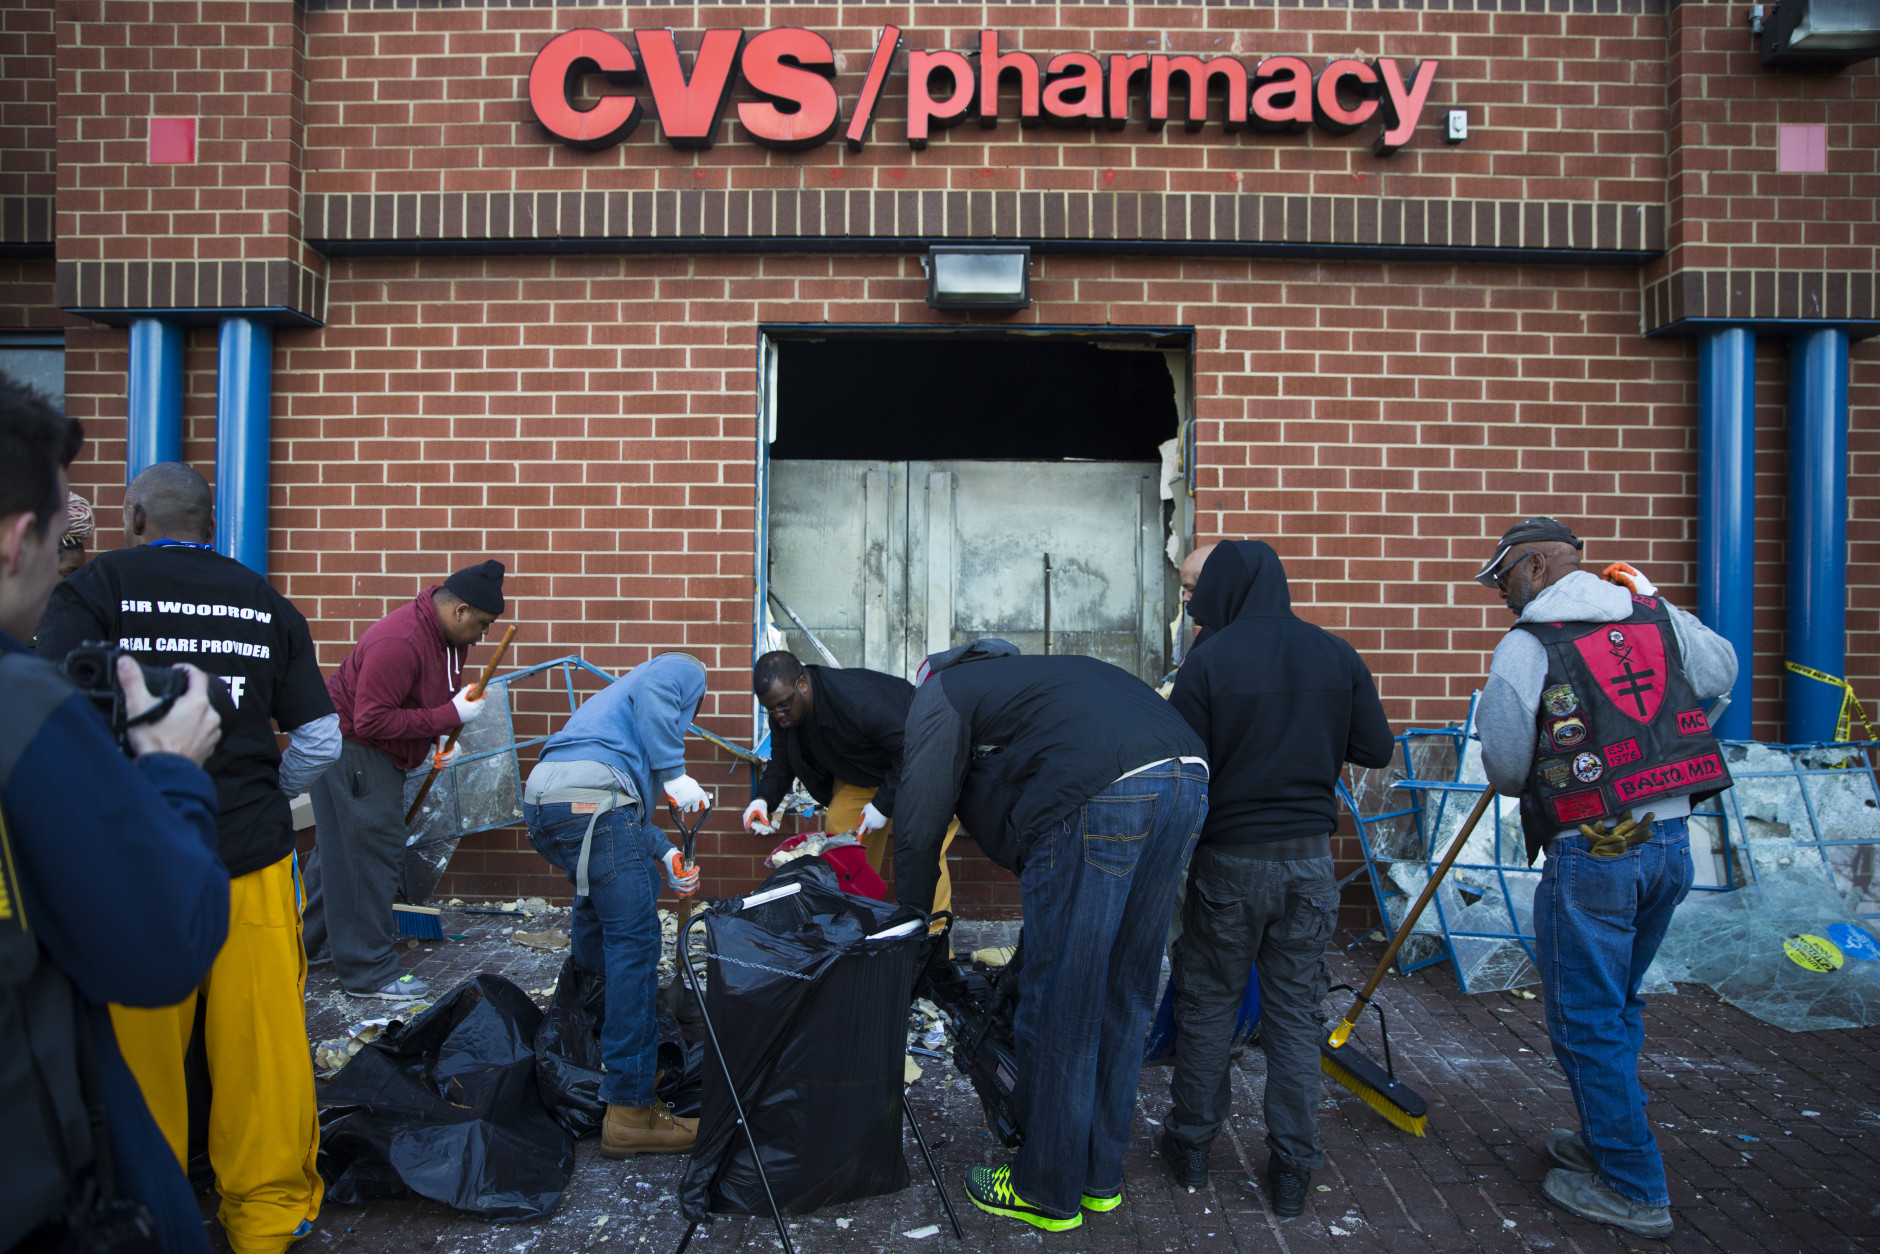 Maryland state troopers stand guard as residents clean up, Tuesday, April 28, 2015, after an evening of riots following the funeral of Freddie Gray on Monday, in Baltimore. (AP Photo/Evan Vucci)